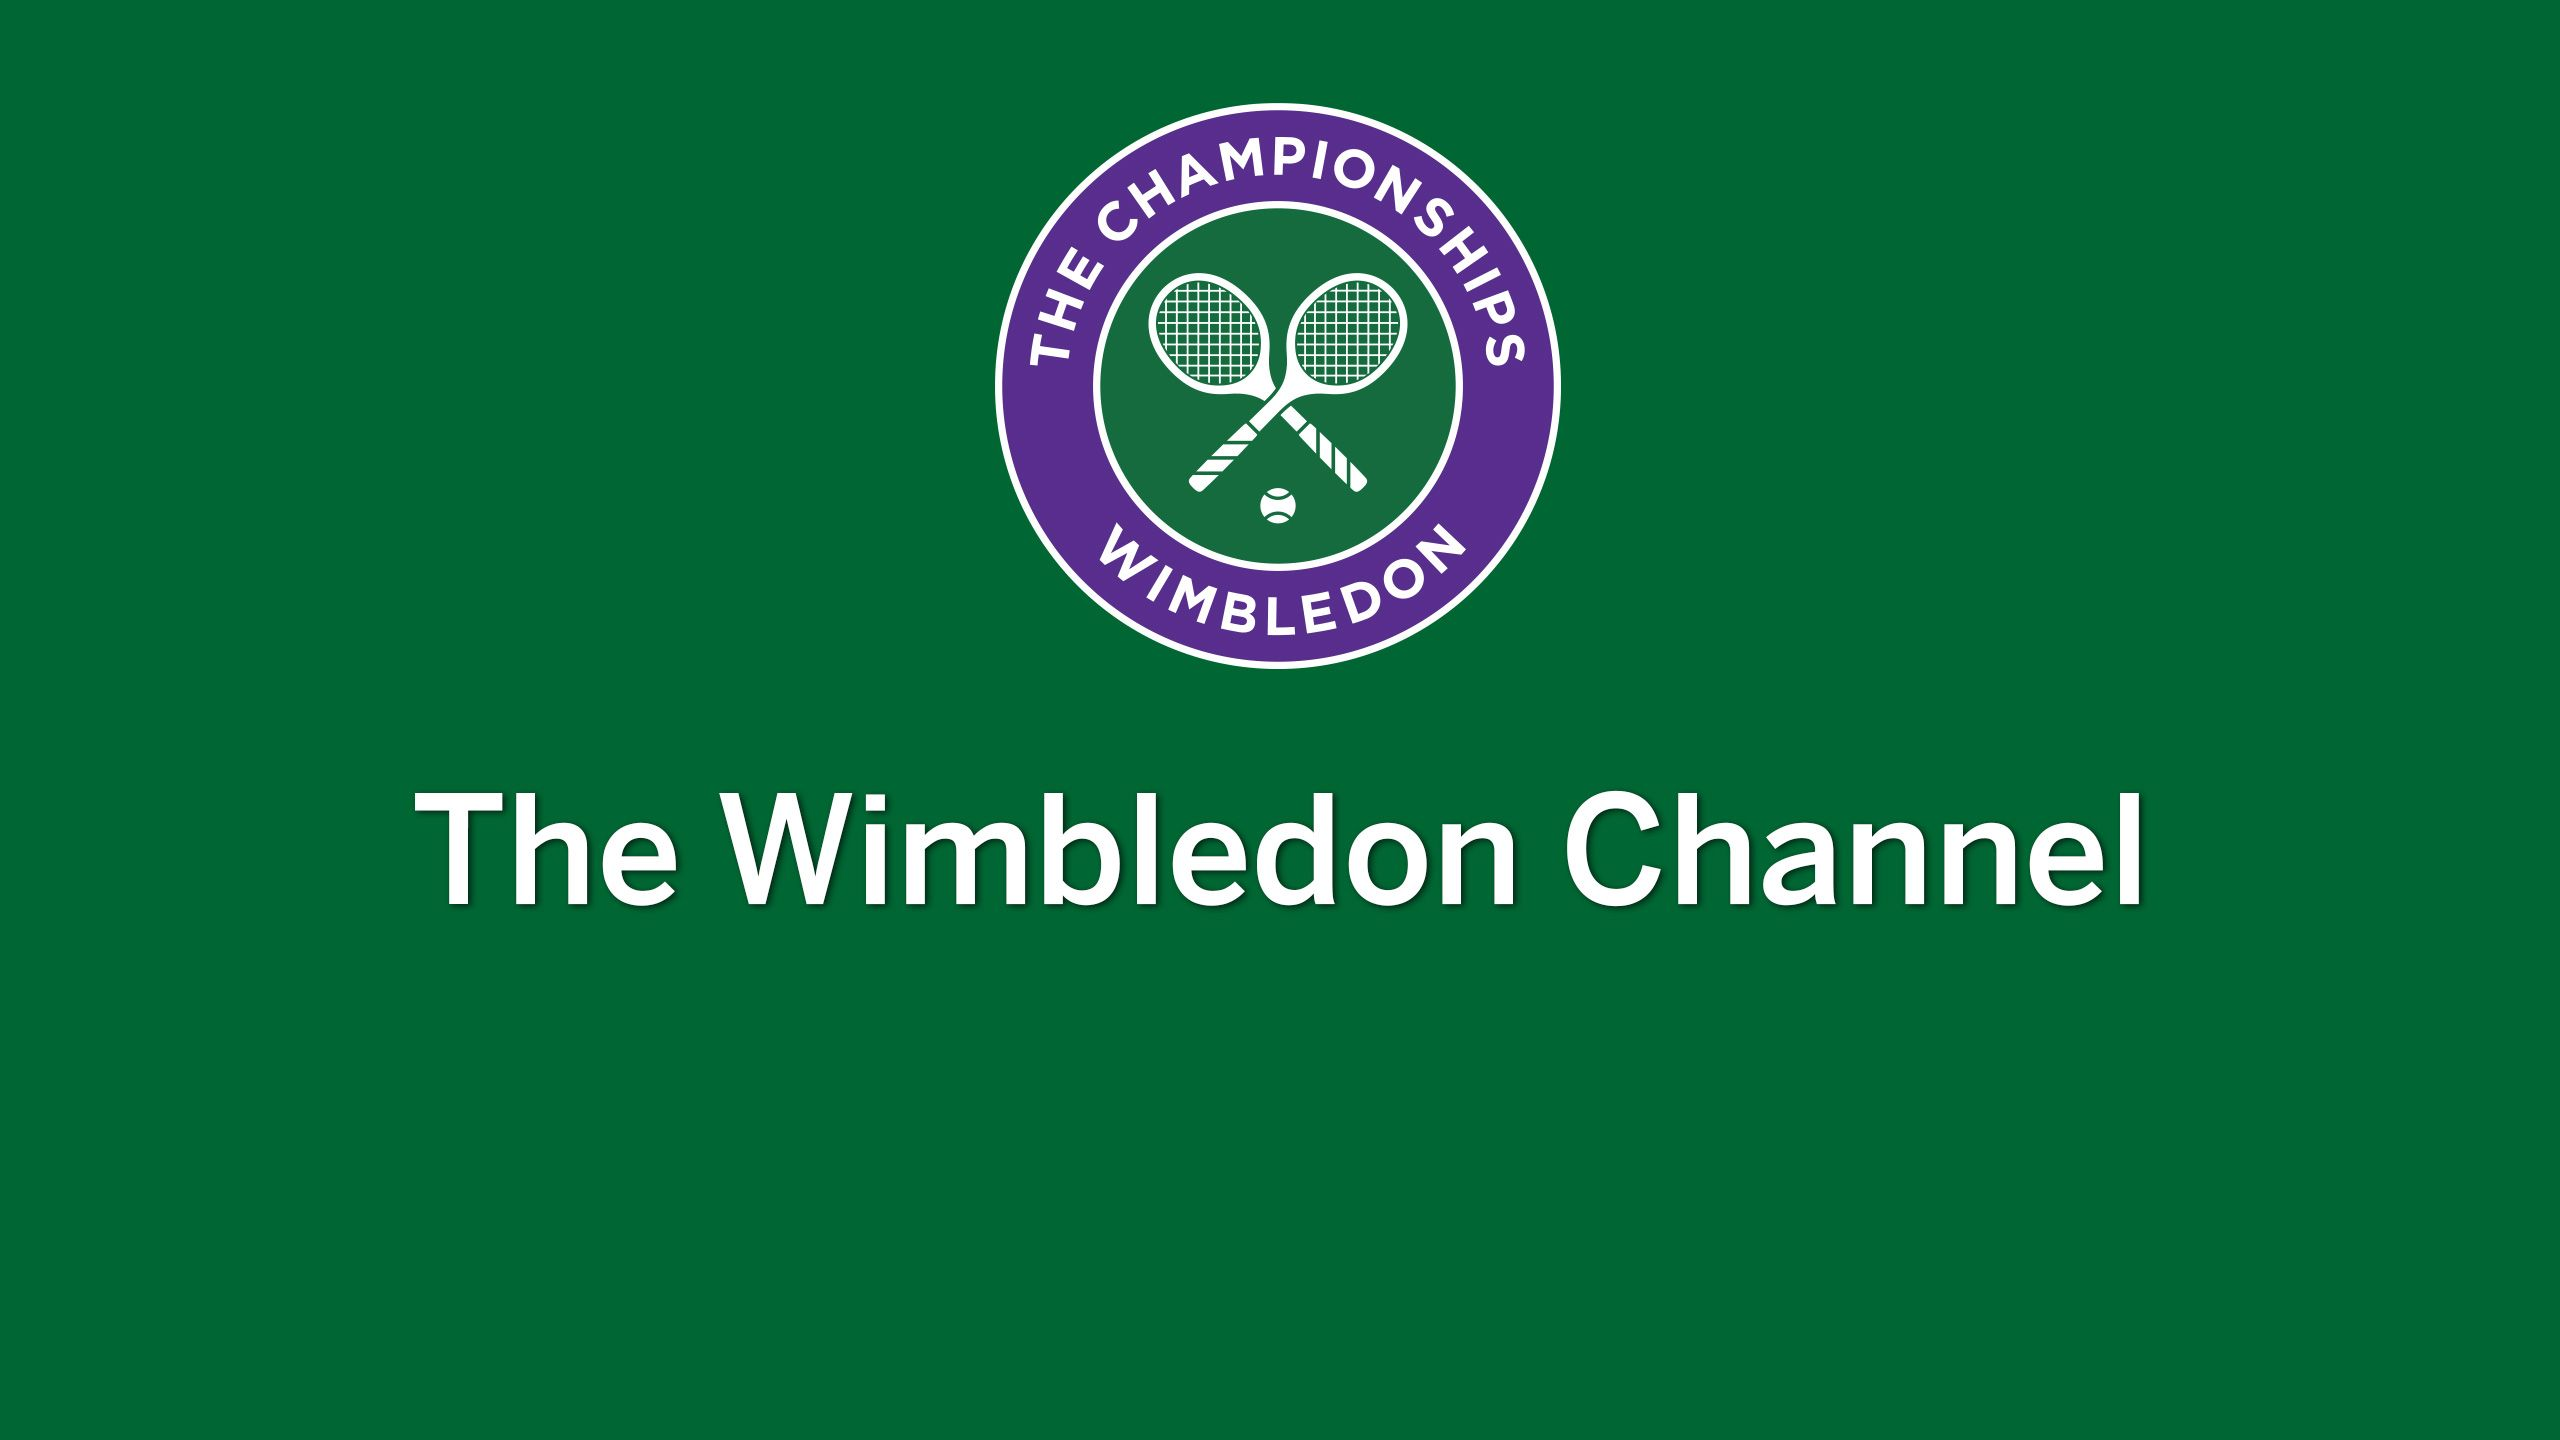 The Wimbledon Channel